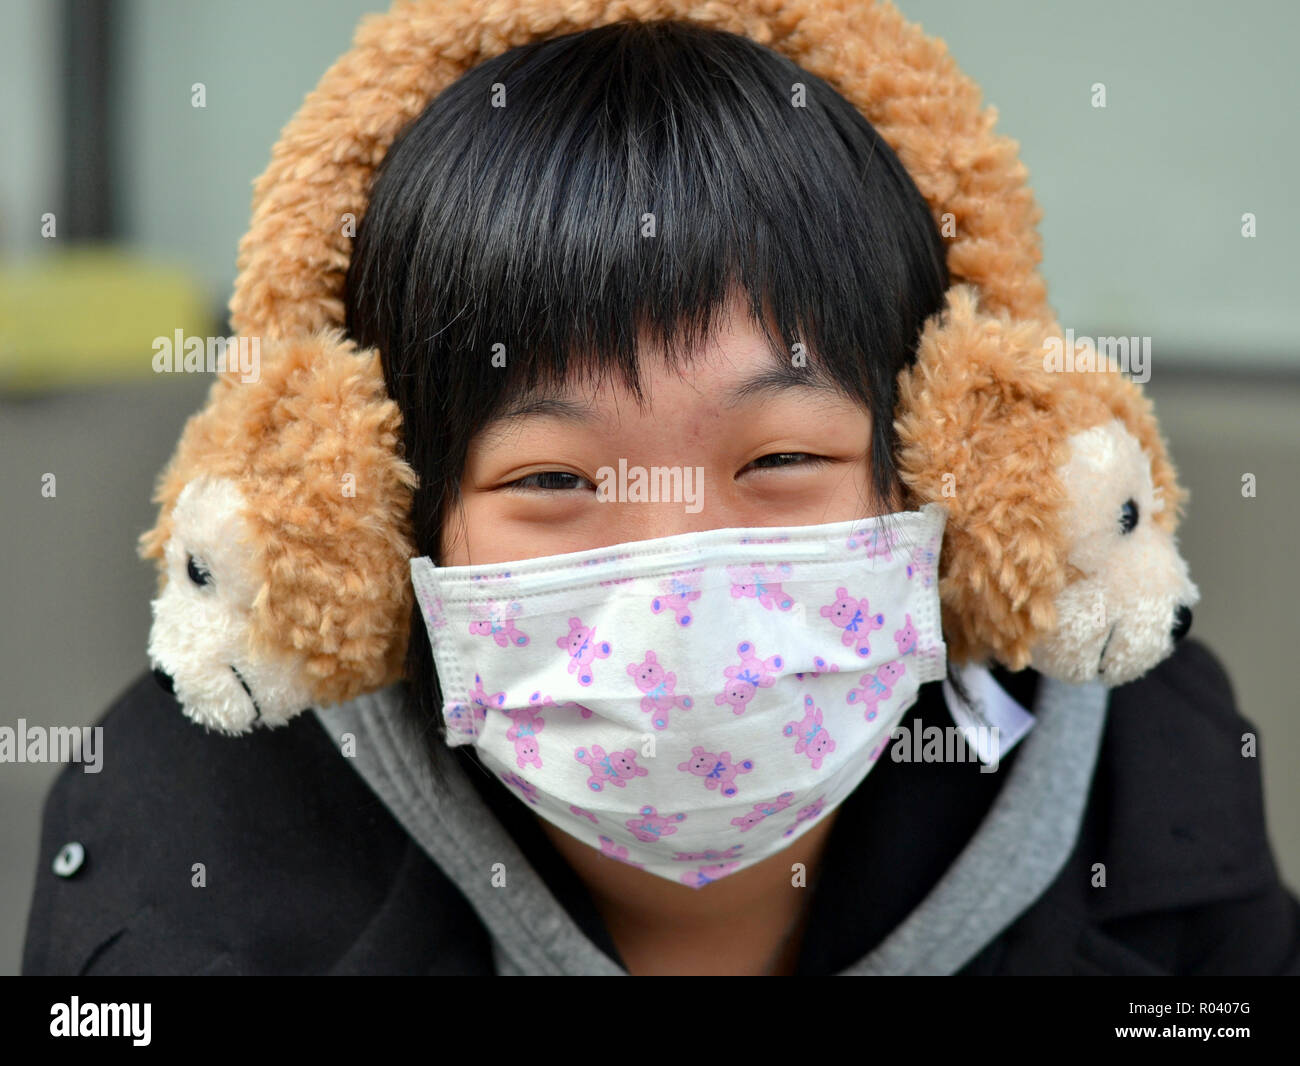 Young Taiwanese woman with smiling eyes wears a disposable surgical earlobe face mask and fluffy winter earmuffs. - Stock Image